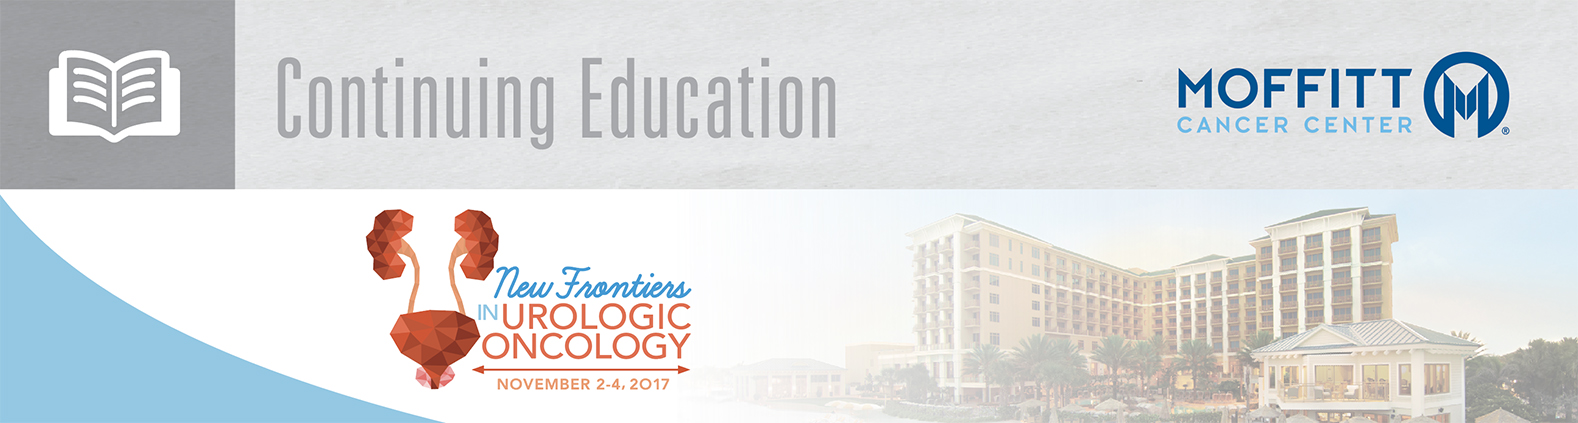 New Frontiers in Urologic Oncology